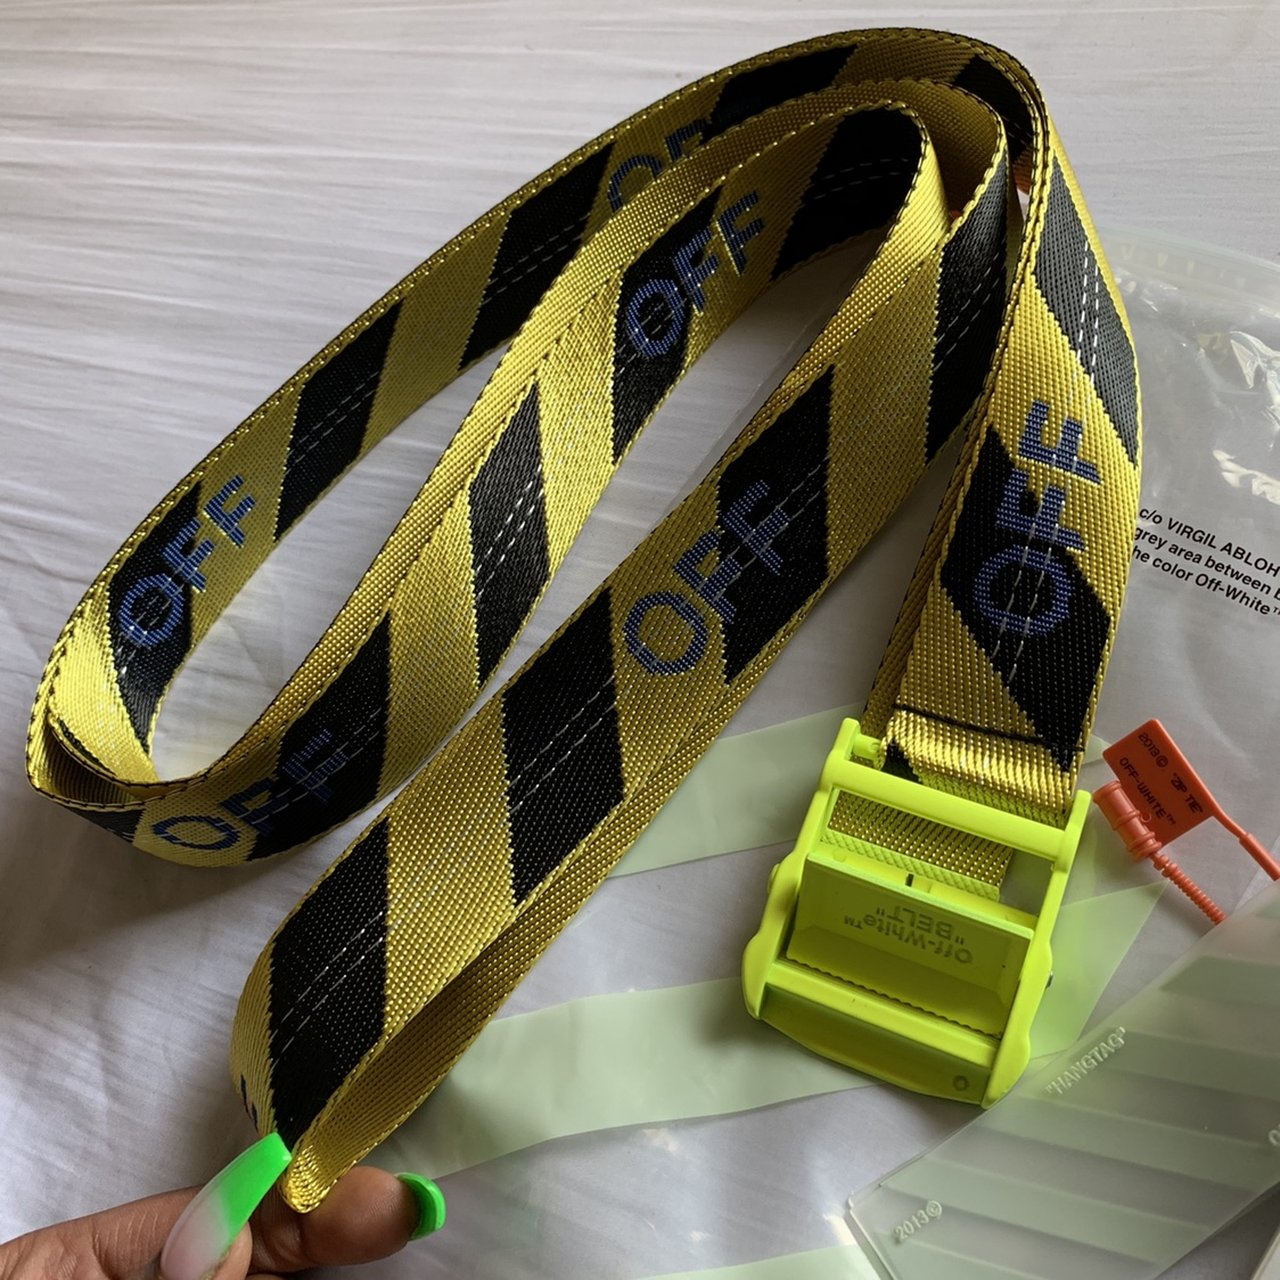 b308708cb85 Off-White industrial belt Selling my exclusive OFF-WHITE - Depop